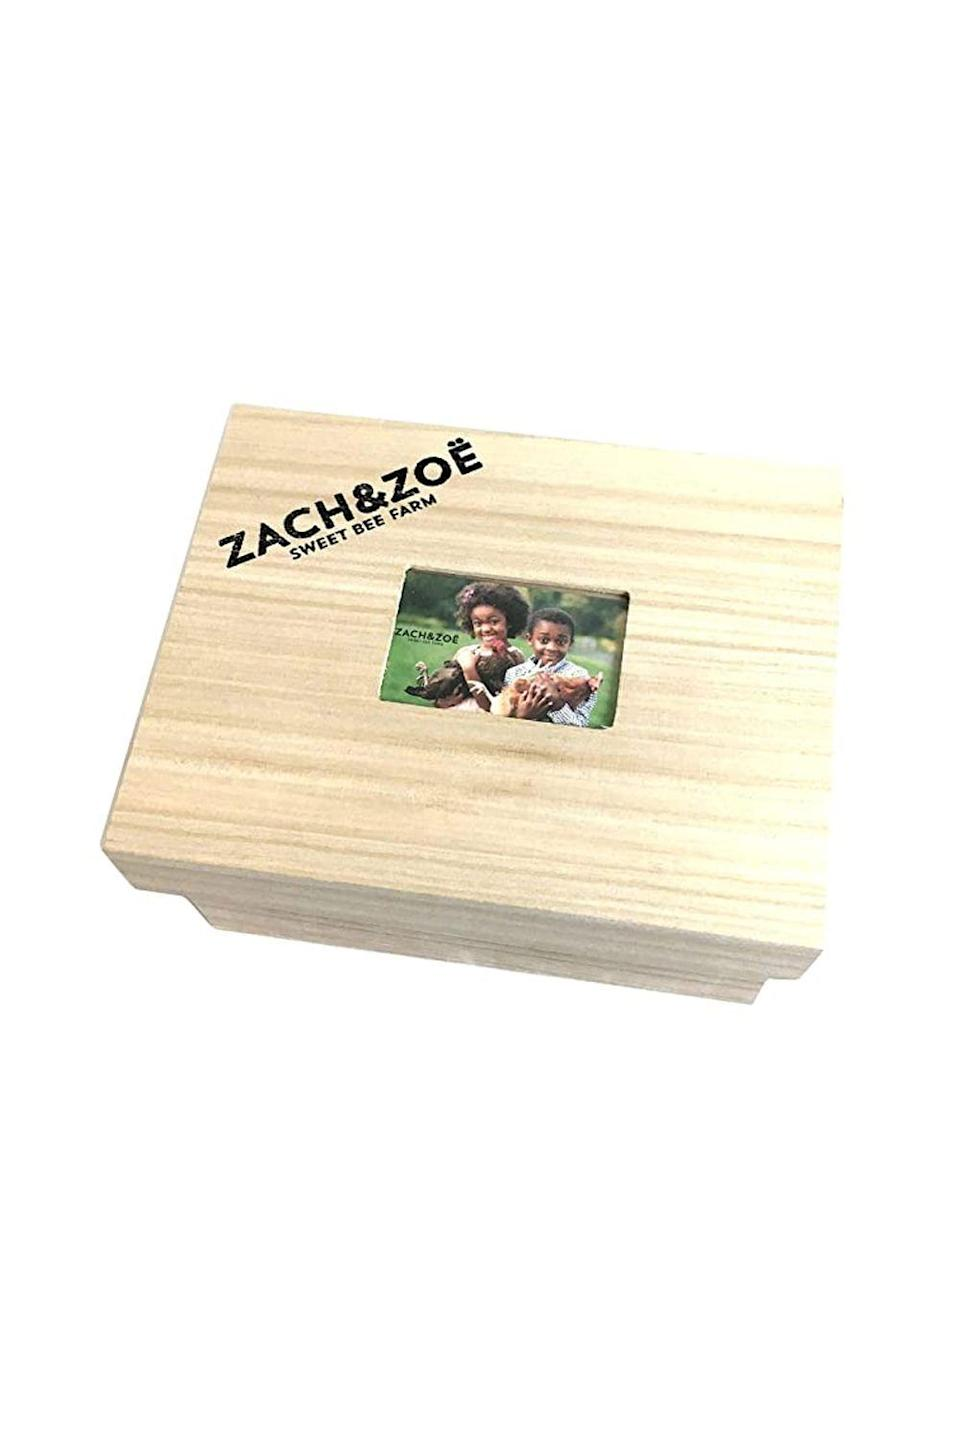 """<p><strong>Zach & Zoe Sweet Bee Farm</strong></p><p>amazon.com</p><p><strong>$50.00</strong></p><p><a href=""""https://www.amazon.com/dp/B08KJ356RX?tag=syn-yahoo-20&ascsubtag=%5Bartid%7C10050.g.34621820%5Bsrc%7Cyahoo-us"""" rel=""""nofollow noopener"""" target=""""_blank"""" data-ylk=""""slk:Shop Now"""" class=""""link rapid-noclick-resp"""">Shop Now</a></p><p>This honey, sustainably harvested on Kam and Summer Johnson's farm in central New Jersey, is packed with antioxidants, vitamins, and amino acids that, when added to a cup of tea or a bowl of freshly-made oatmeal, make for a delicious, nutritious way to start the day.</p>"""